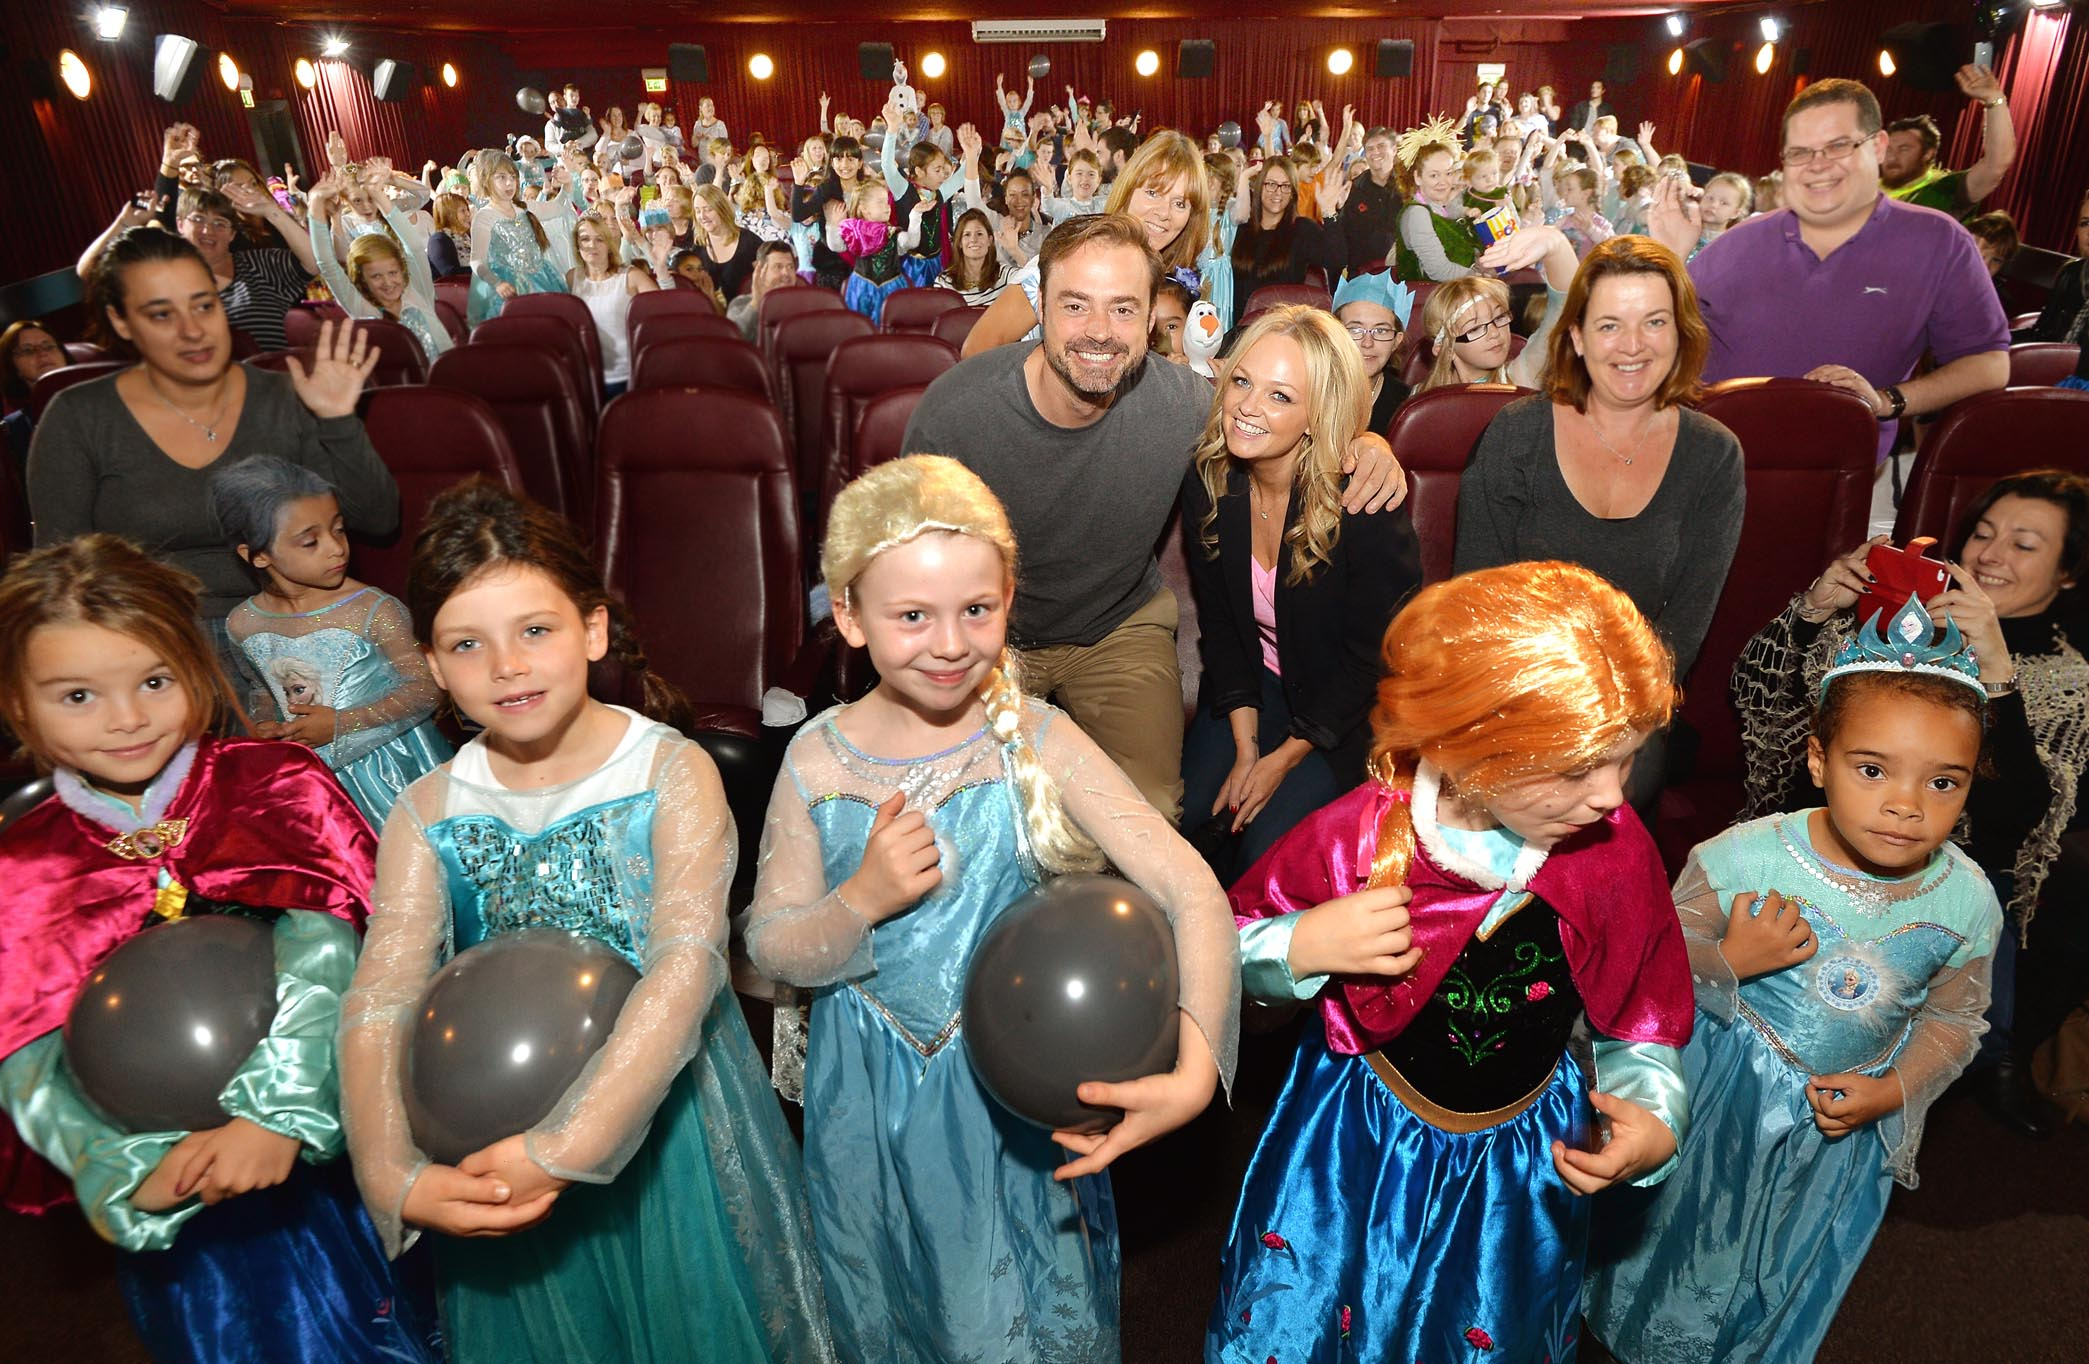 Heart's Jamie And Emma Sing-along To Disney's Frozen